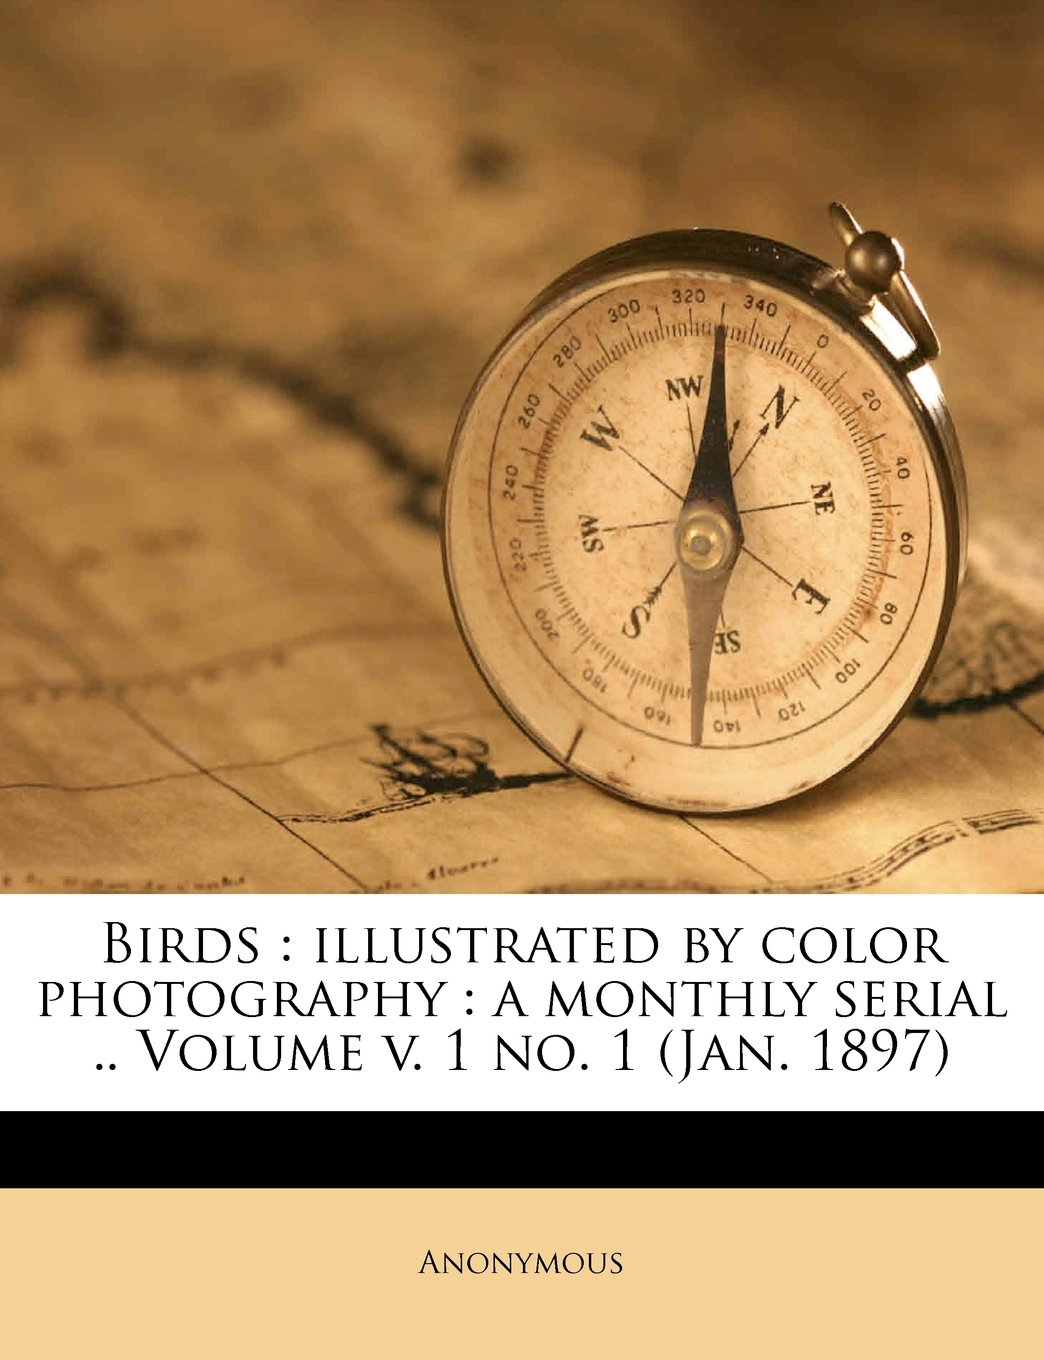 Birds: illustrated by color photography : a monthly serial .. Volume v. 1 no. 1 (Jan. 1897)